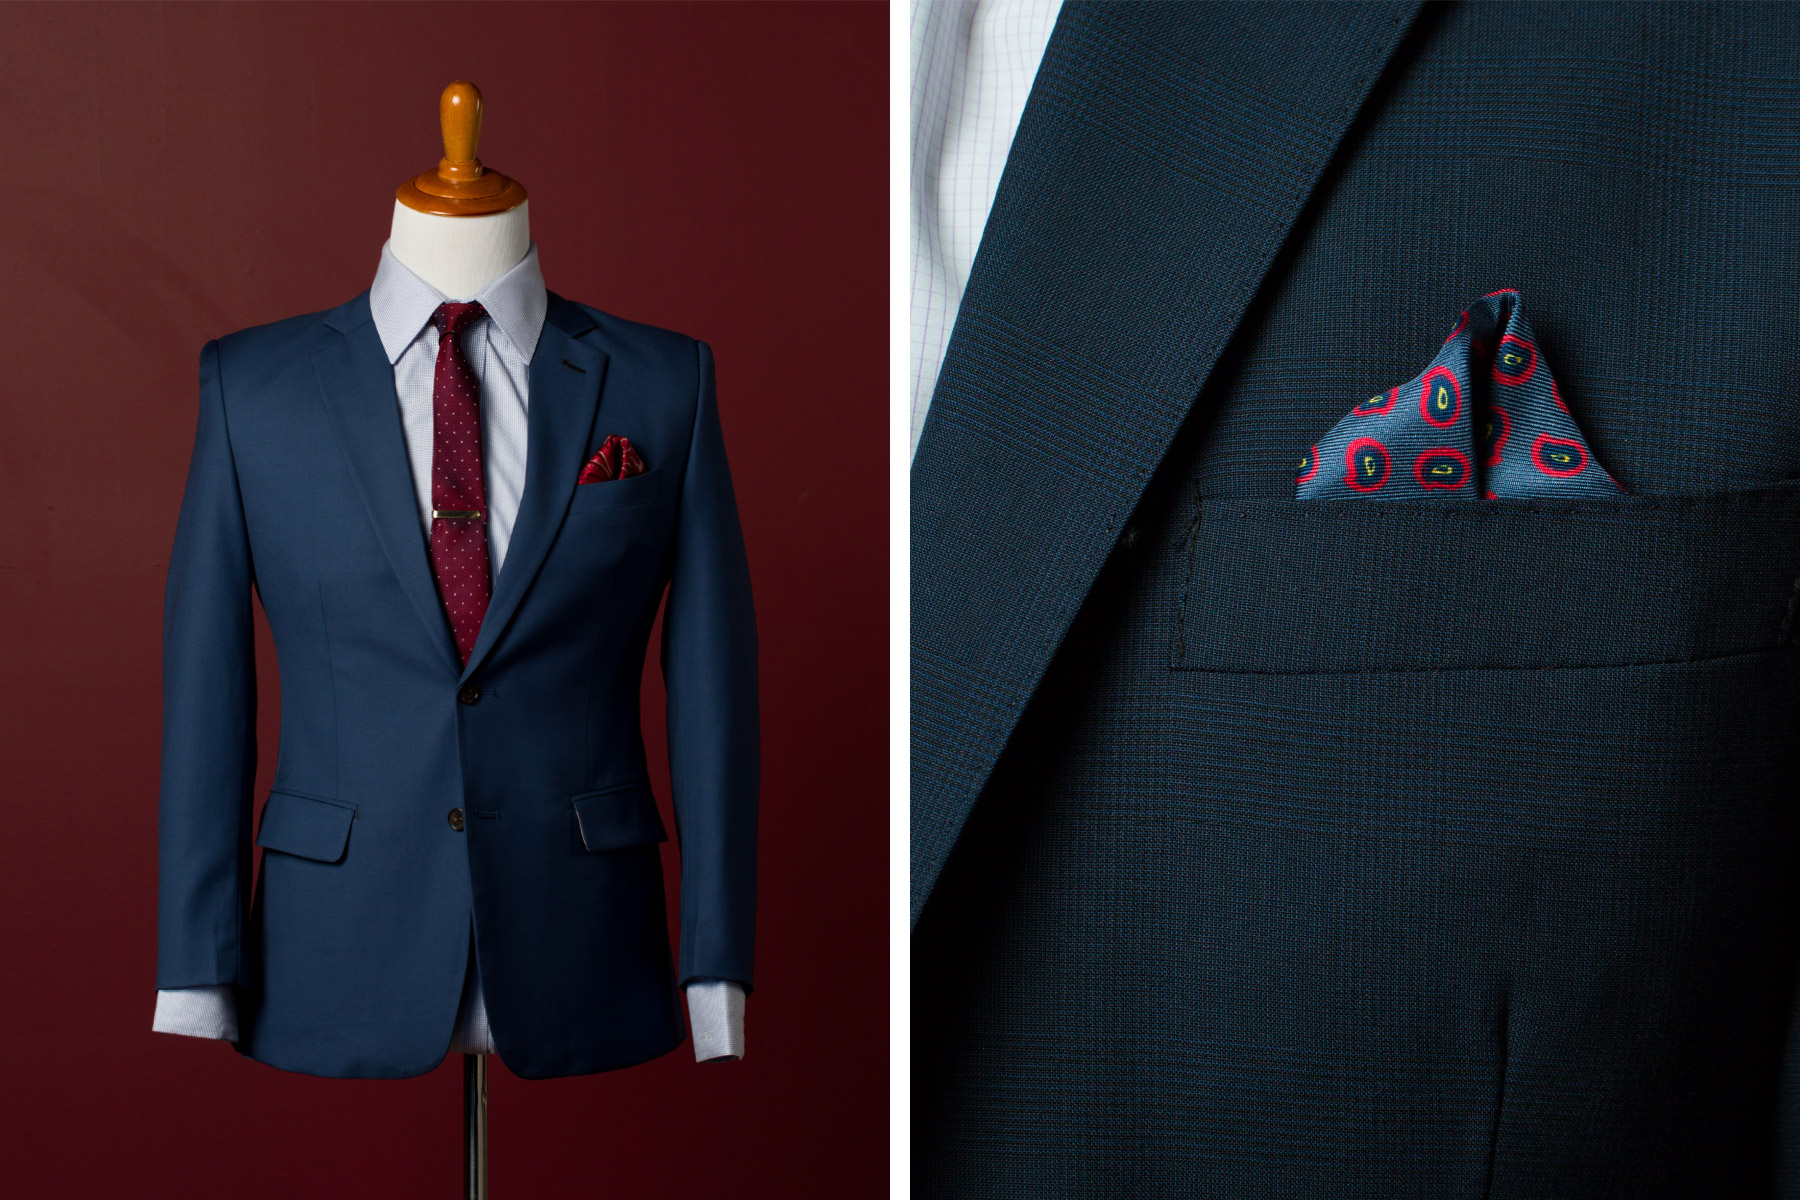 Men's classic navy suit with pocket square